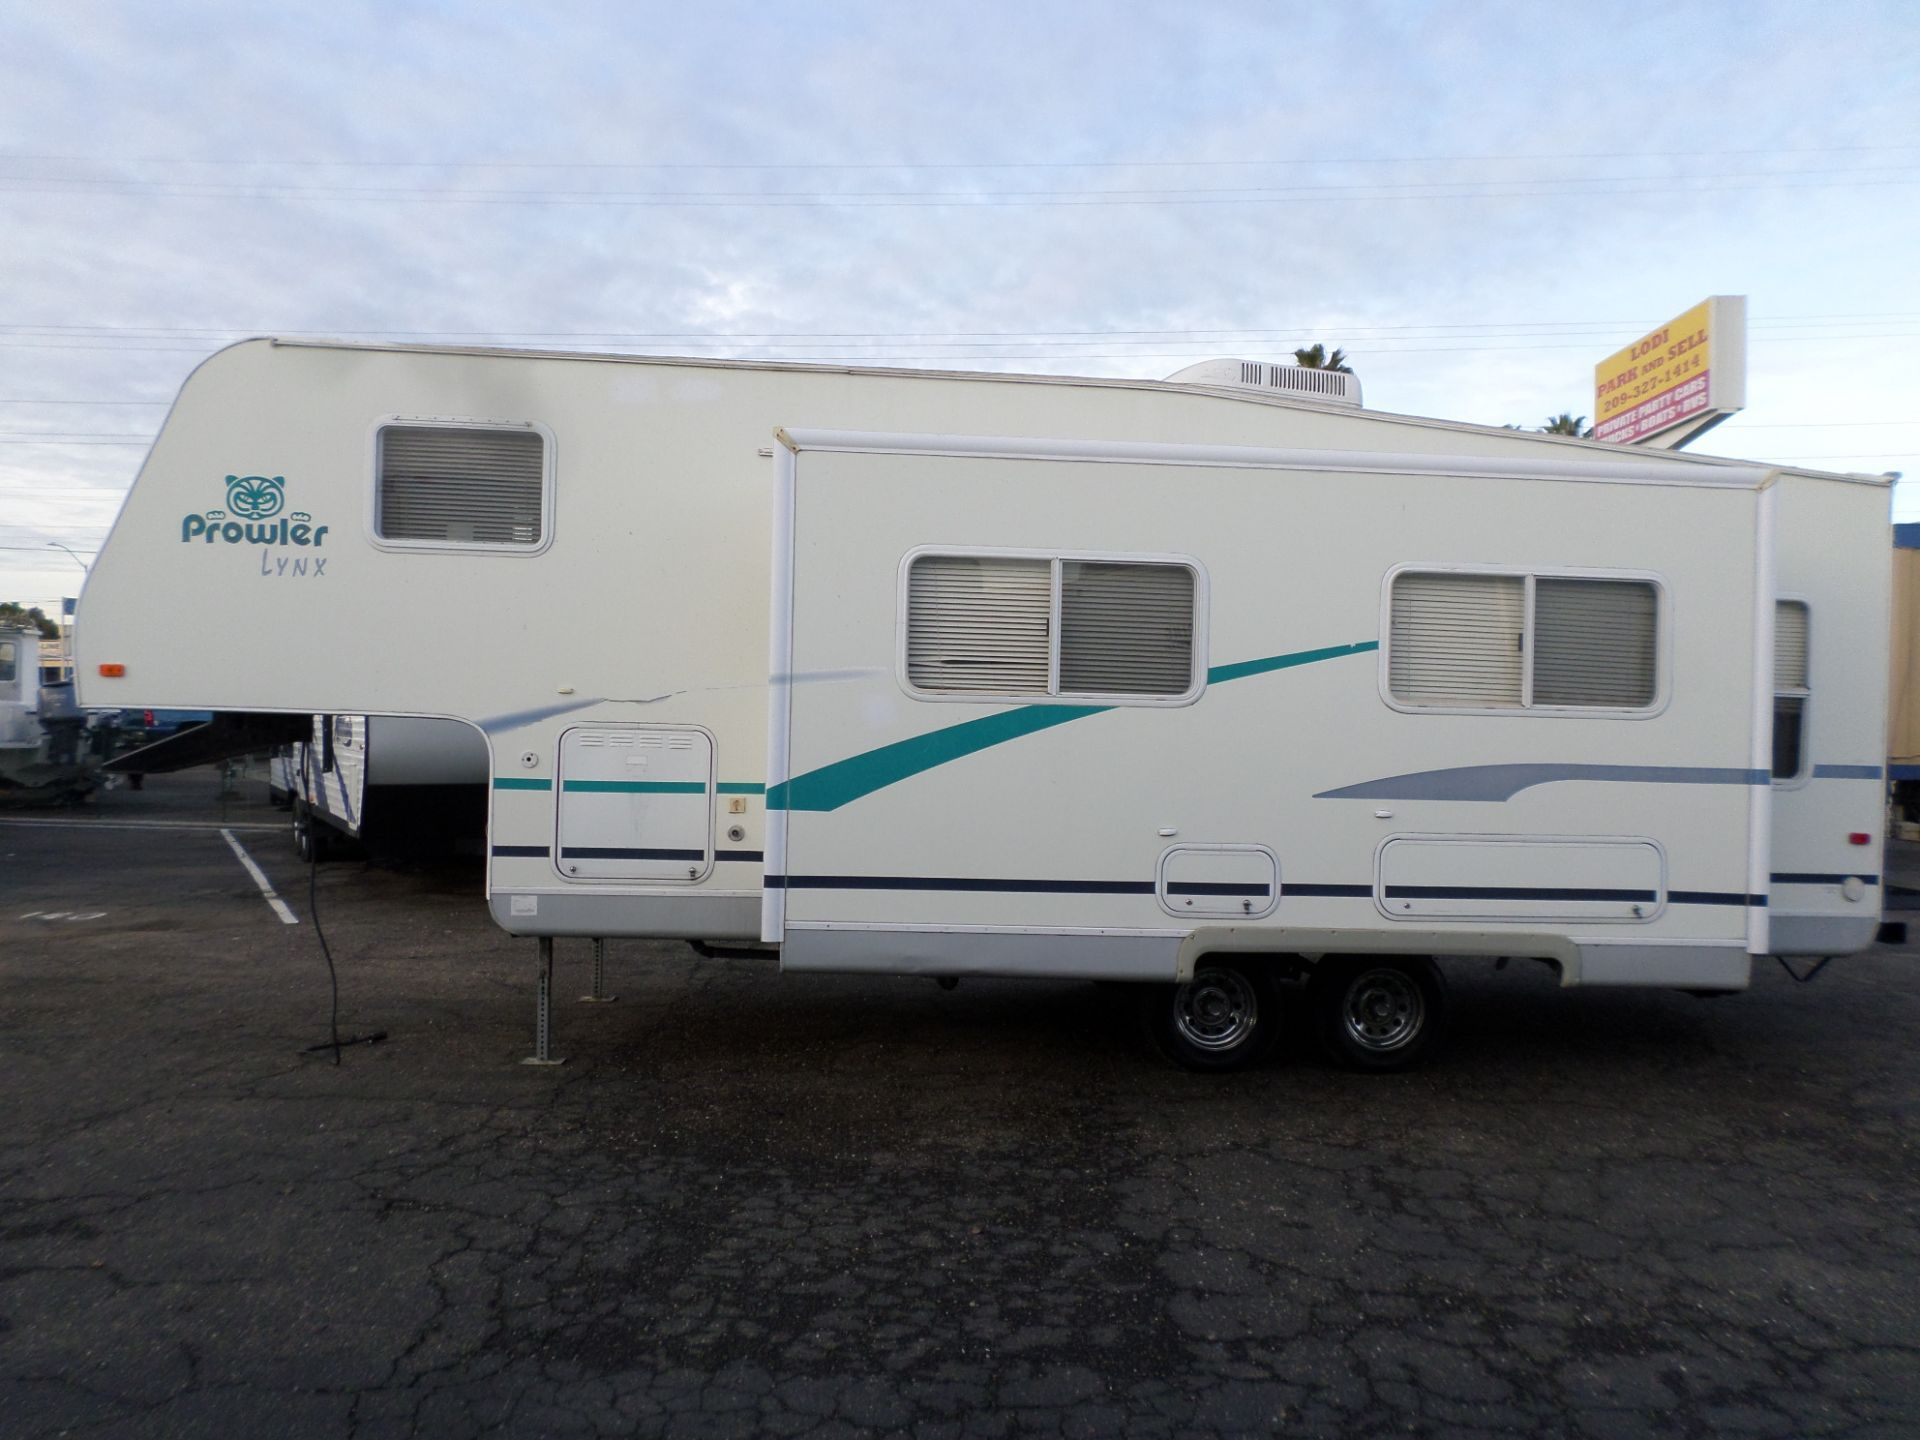 2002 Prowler 5th Wheel Lynx Rv For Sale 5th Wheels For Sale